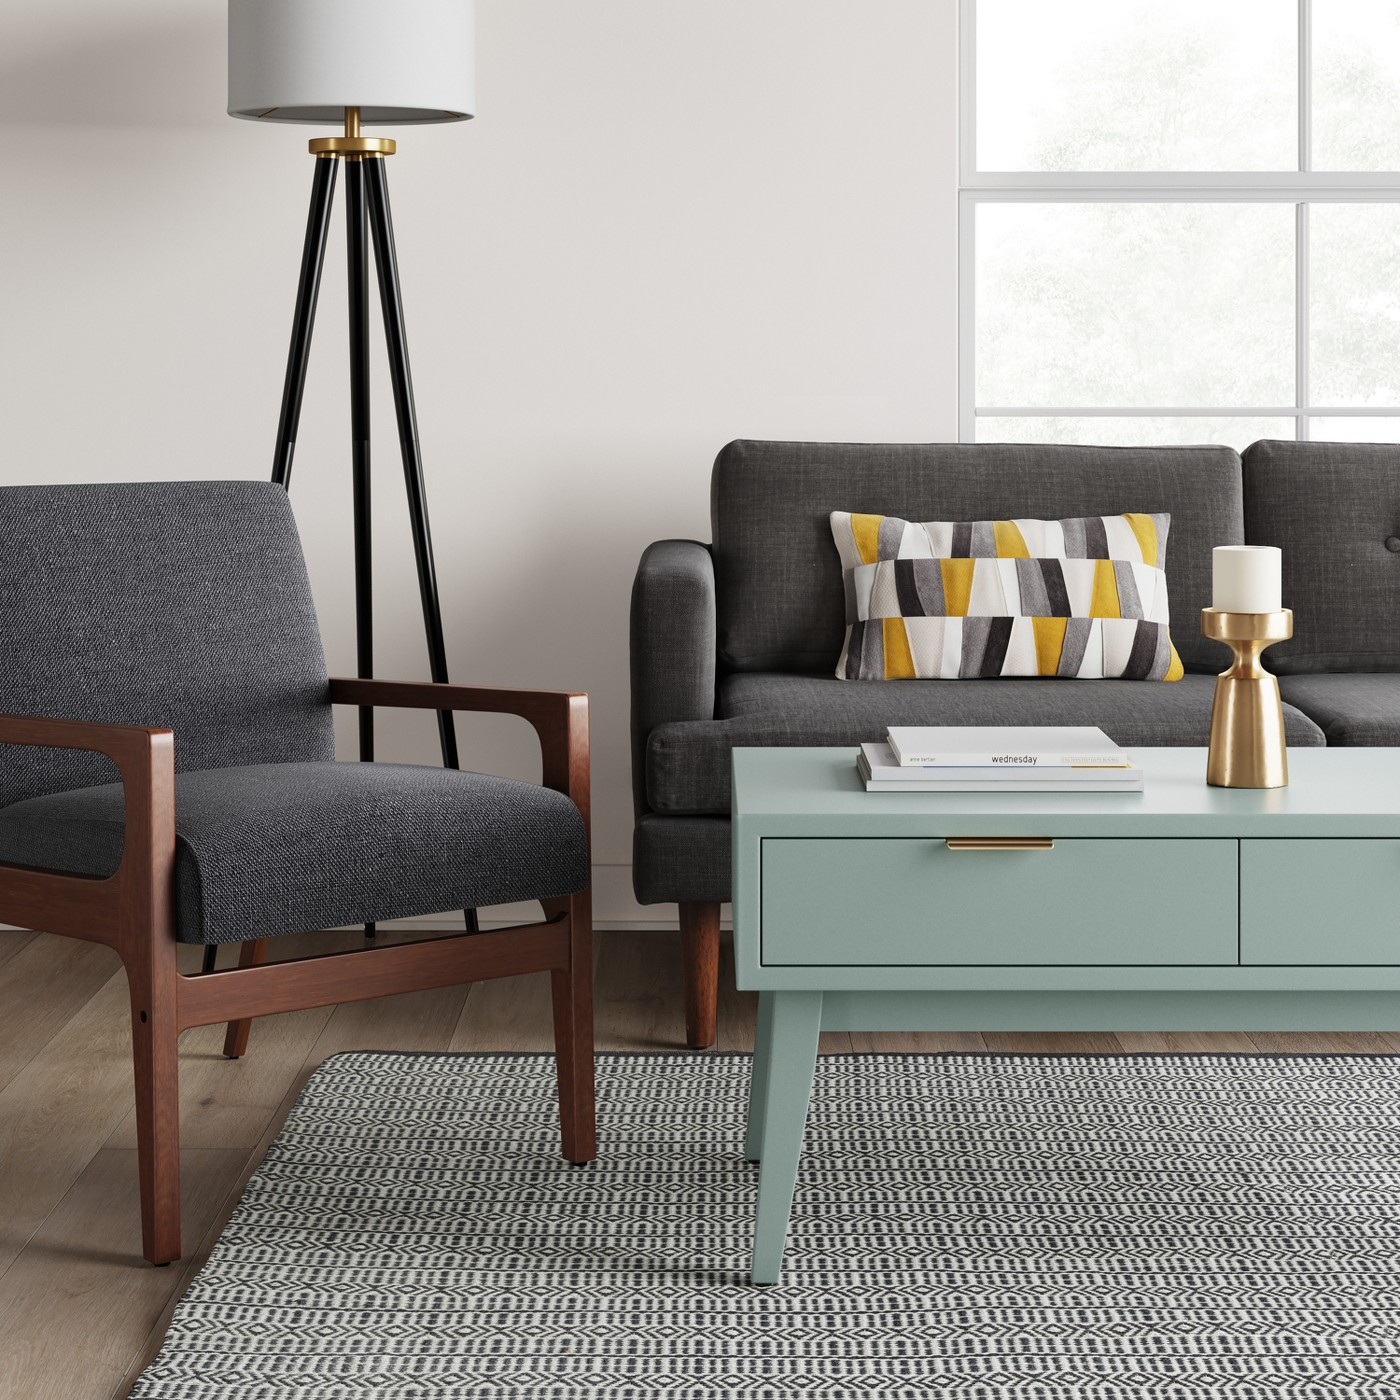 Hafley Coffee Table Smoke Green - Project 62™ - image 2 of 3